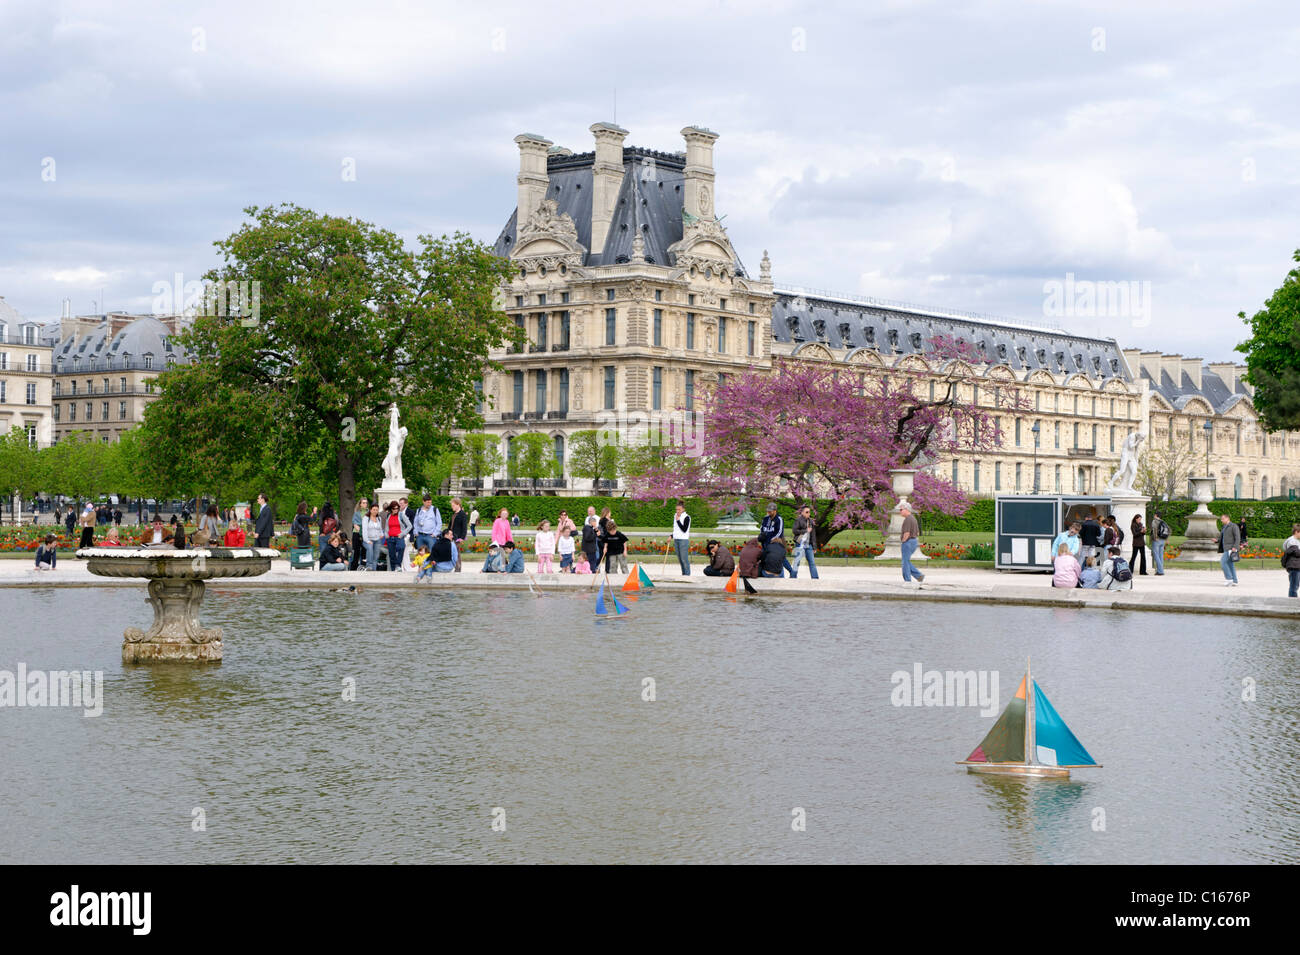 Jardin des Tuileries, Unesco, Paris, Central, France, Europe - Stock Image